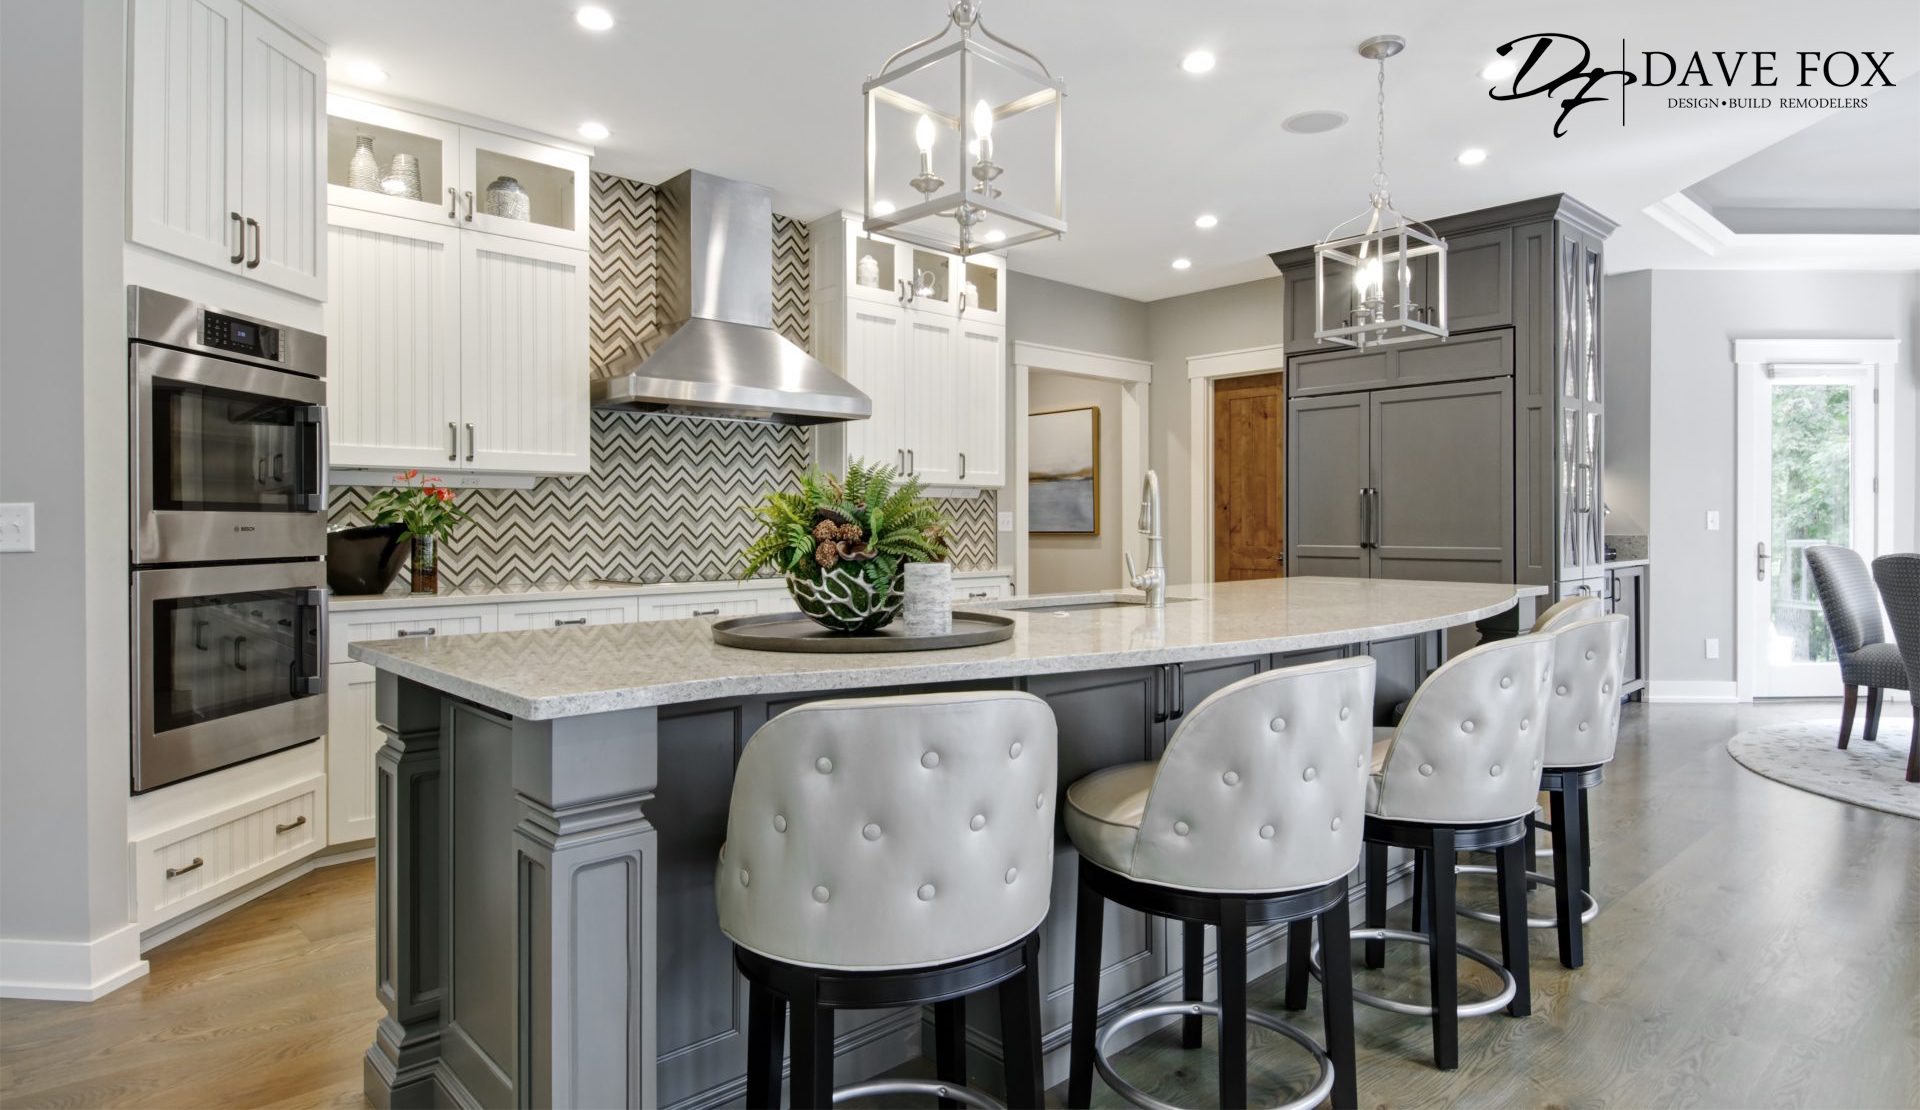 4 Questions You Should Ask Before Renovating Your Kitchen Planning A Kitchen Remodel In Columbus Ohio Dave Fox